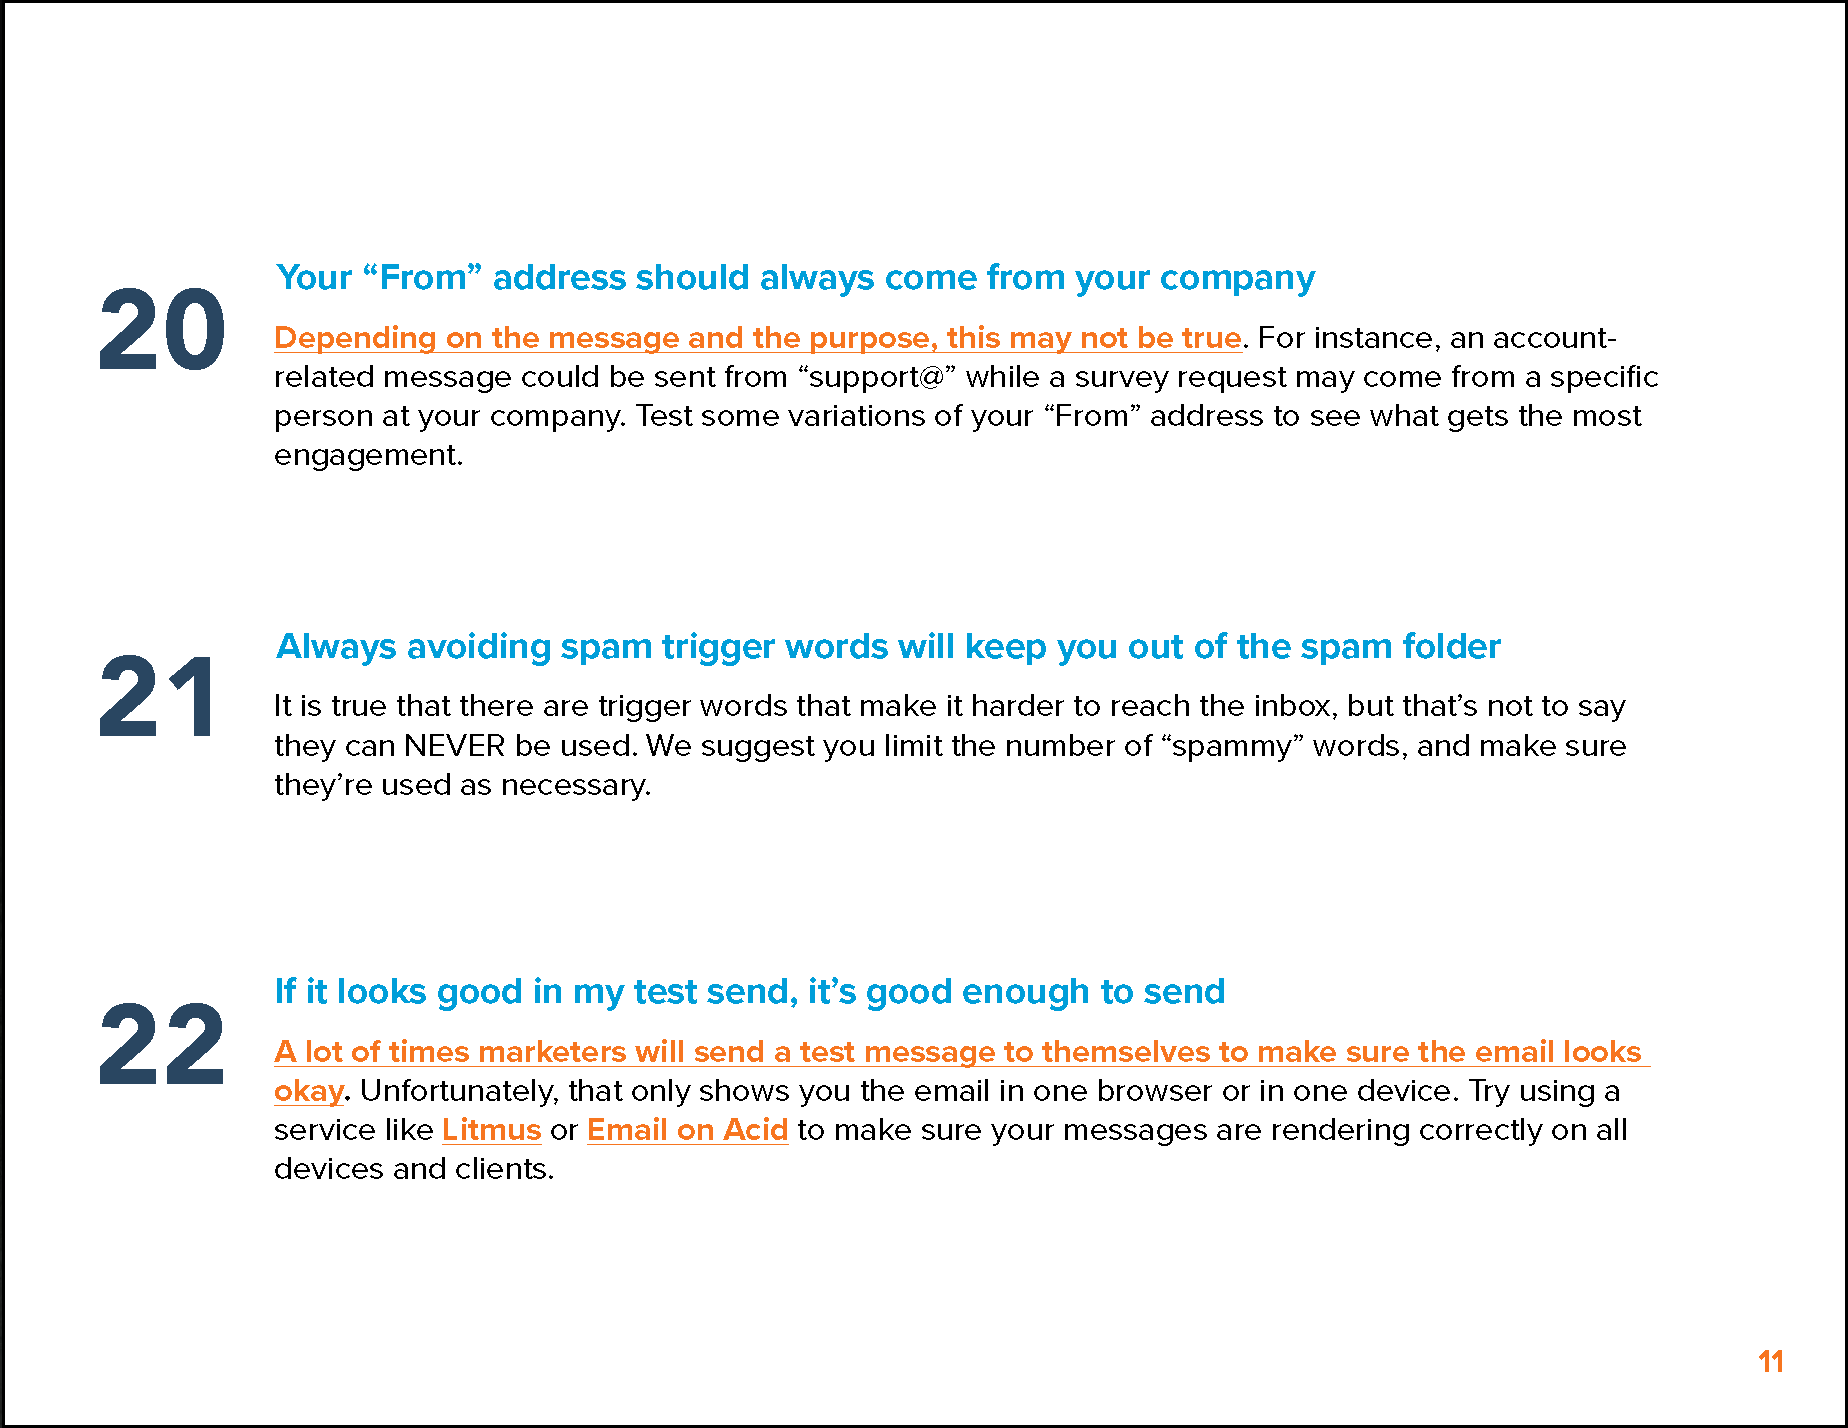 Email_Marketing Myths_Experiments_Inspiration Ebook_4.png